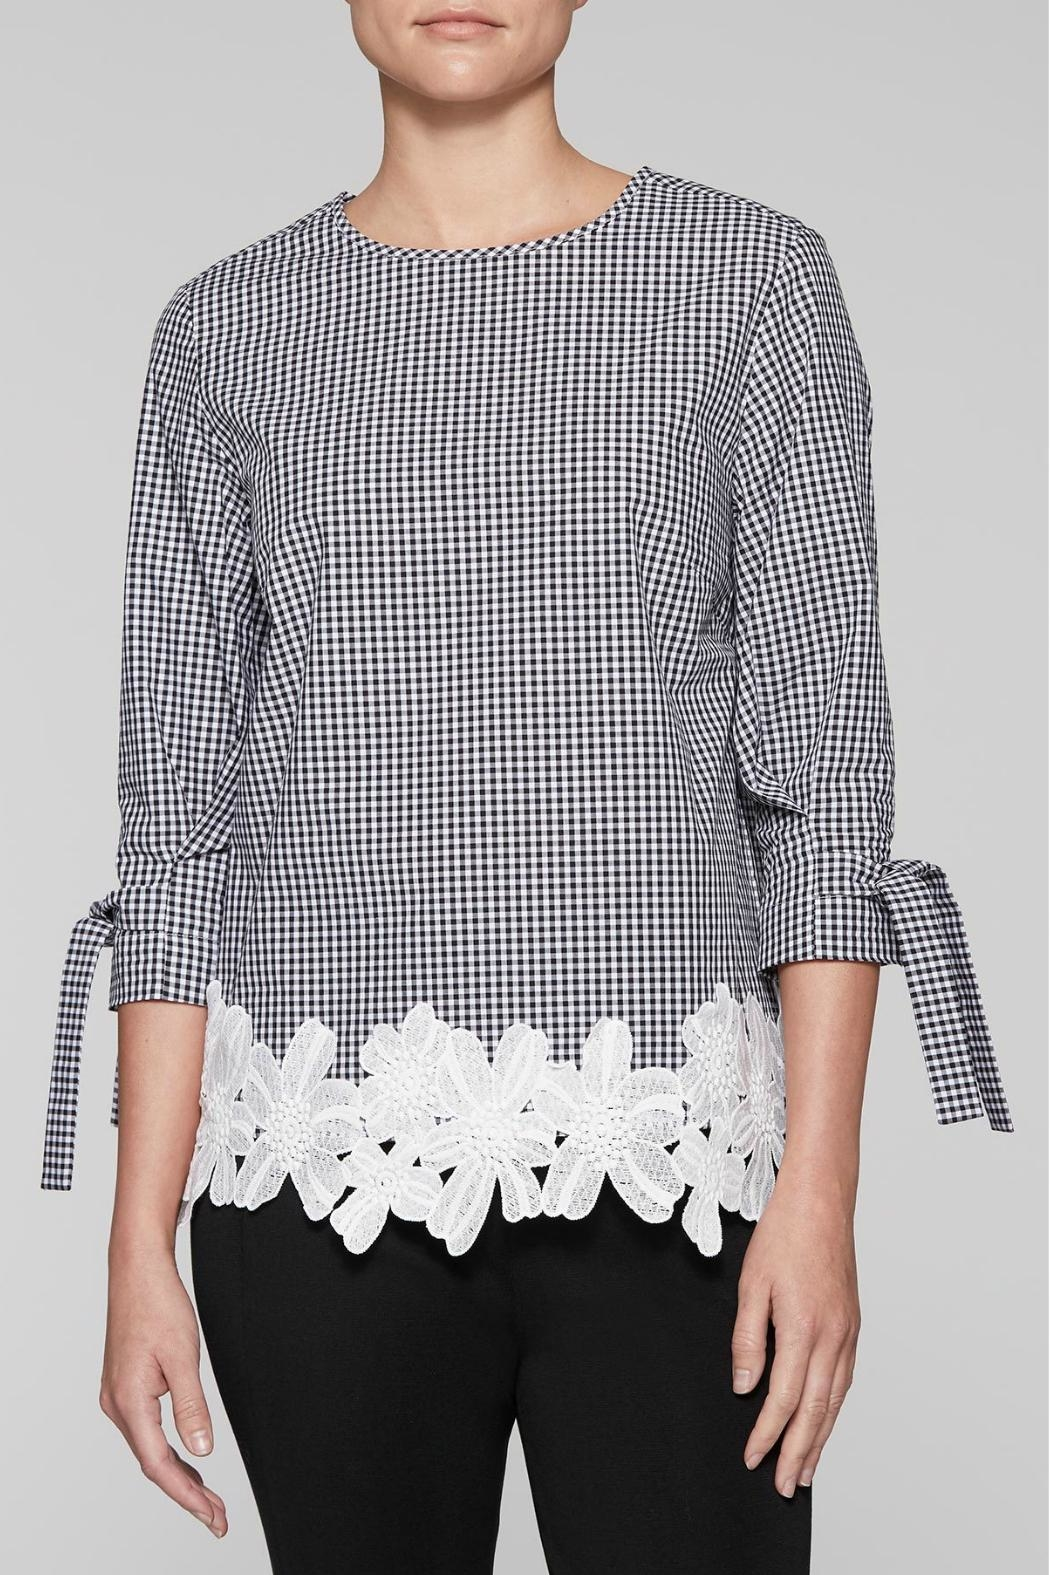 Ming Wang Gingham Check Blouse - Main Image